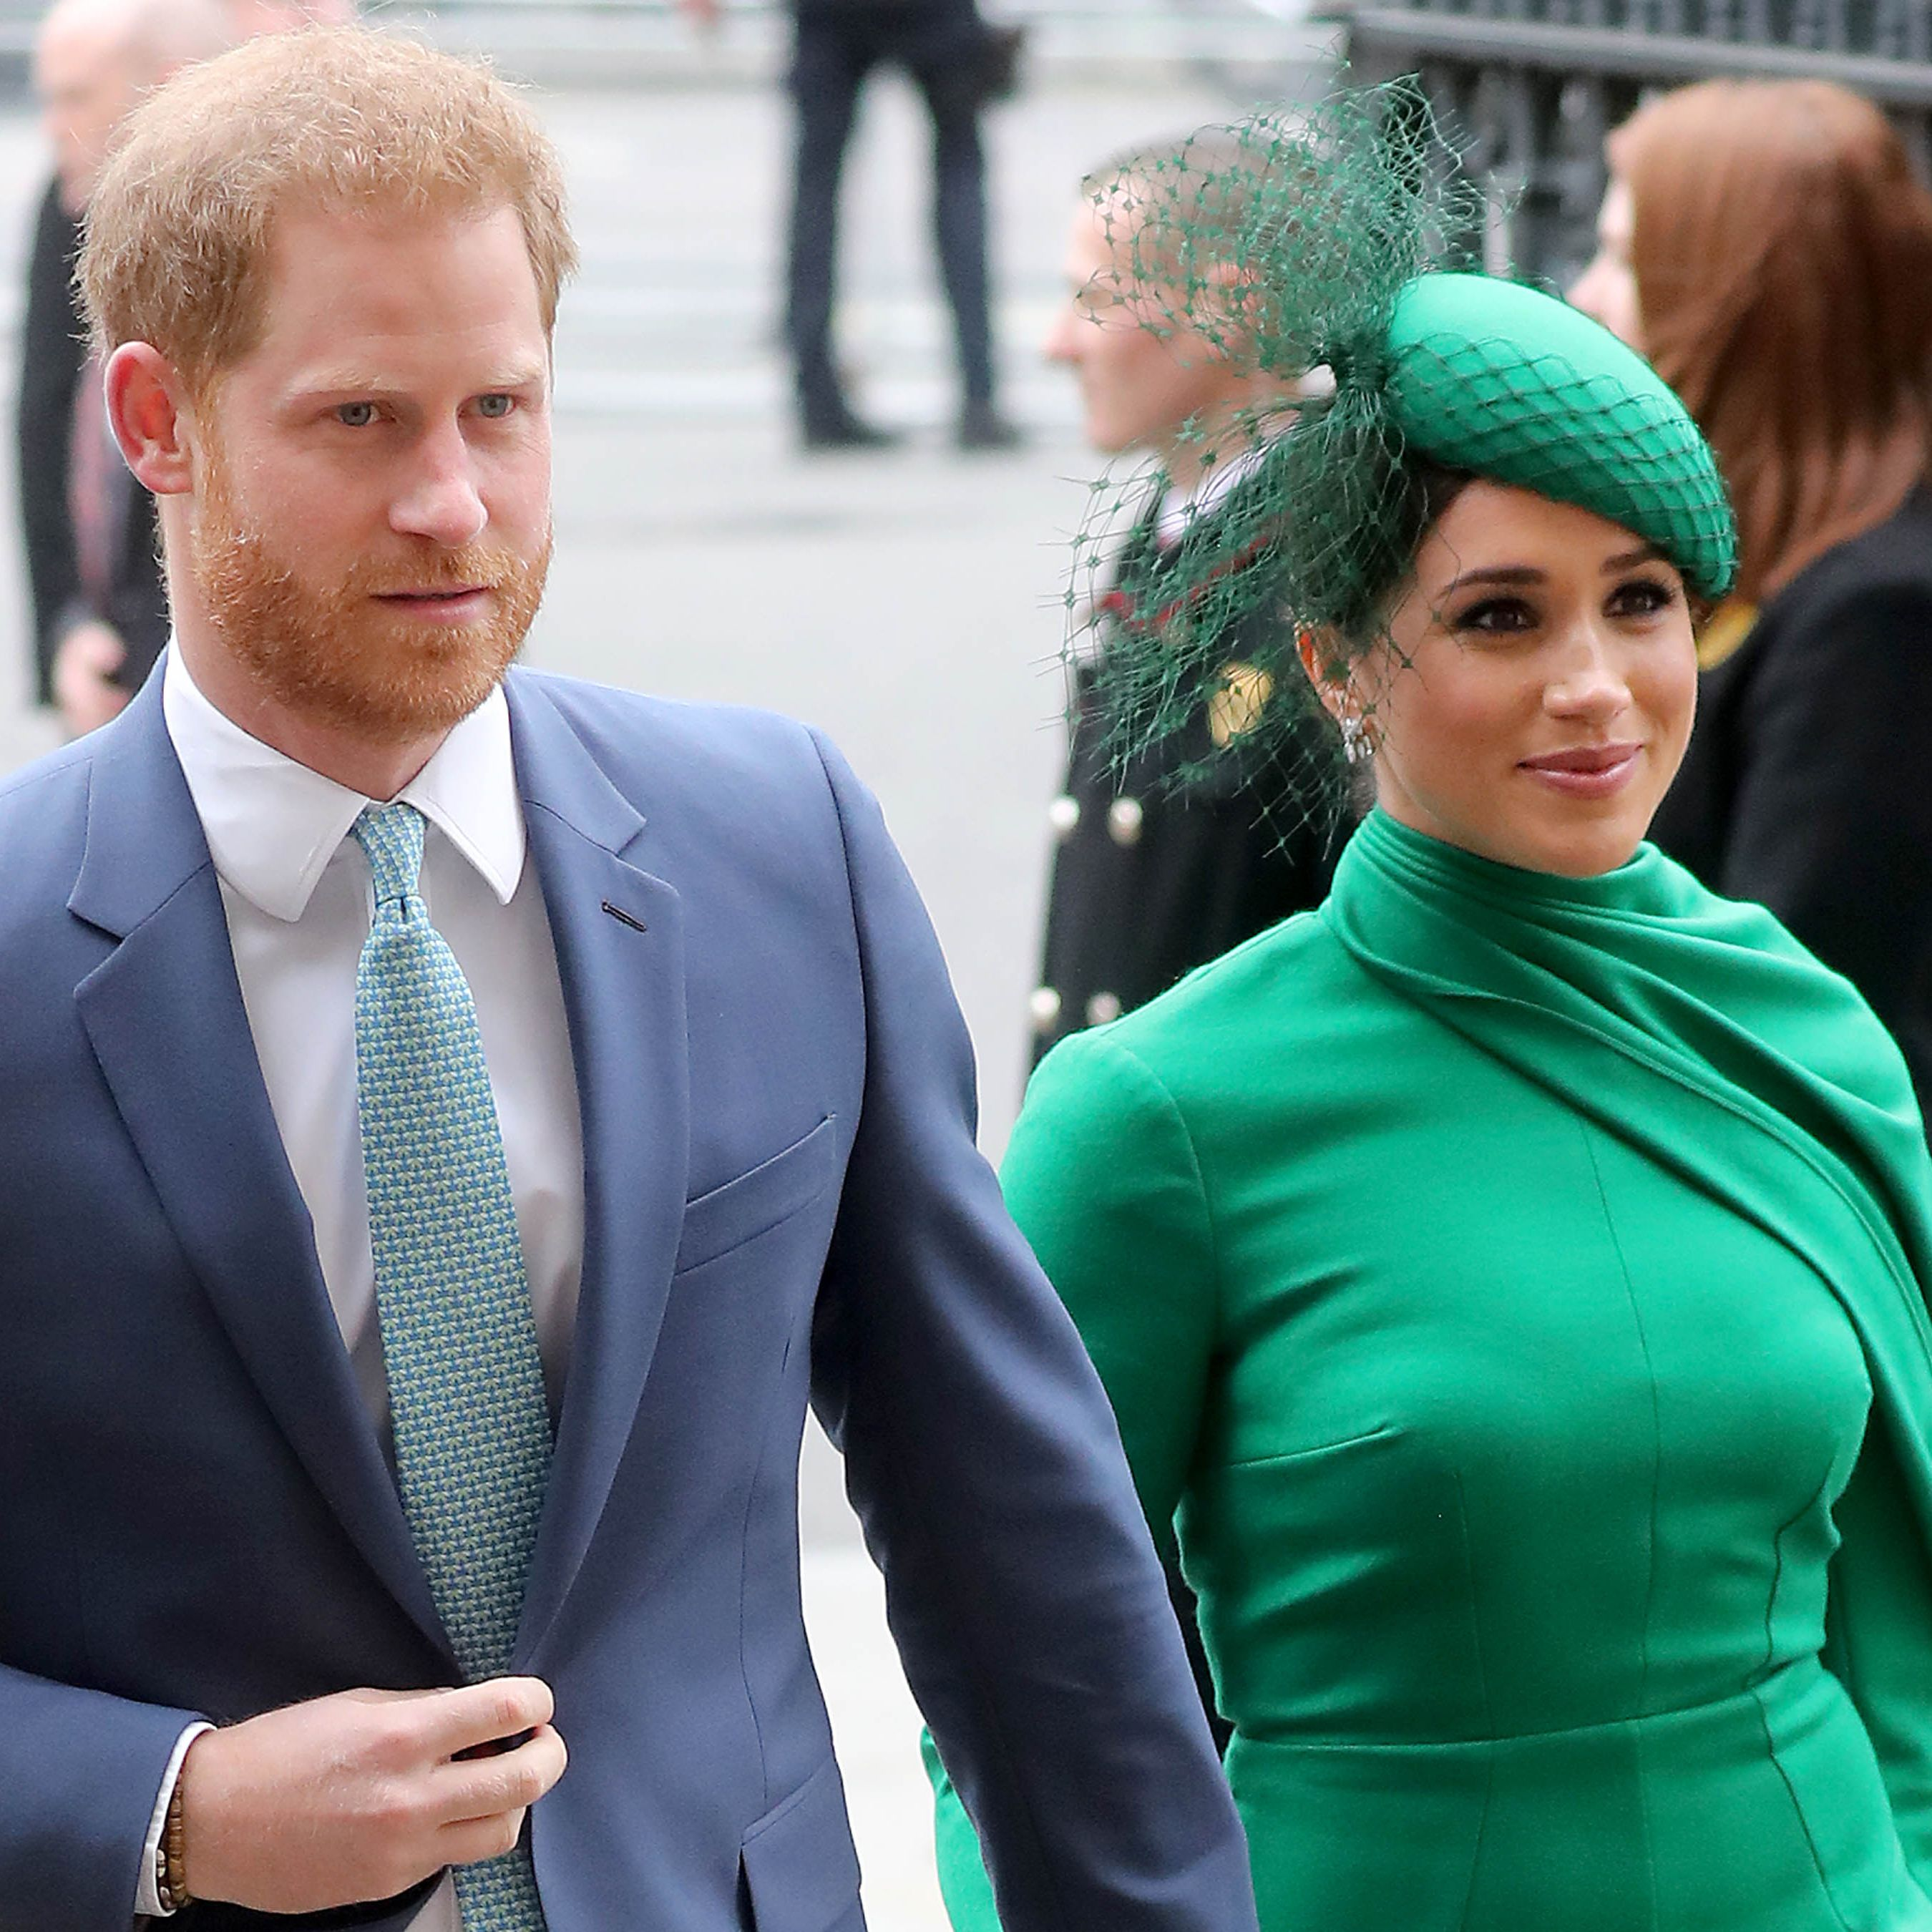 Prince Harry and Meghan Markle Celebrated Their 2nd Anniversary With Mexican Takeout and Cotton Gifts